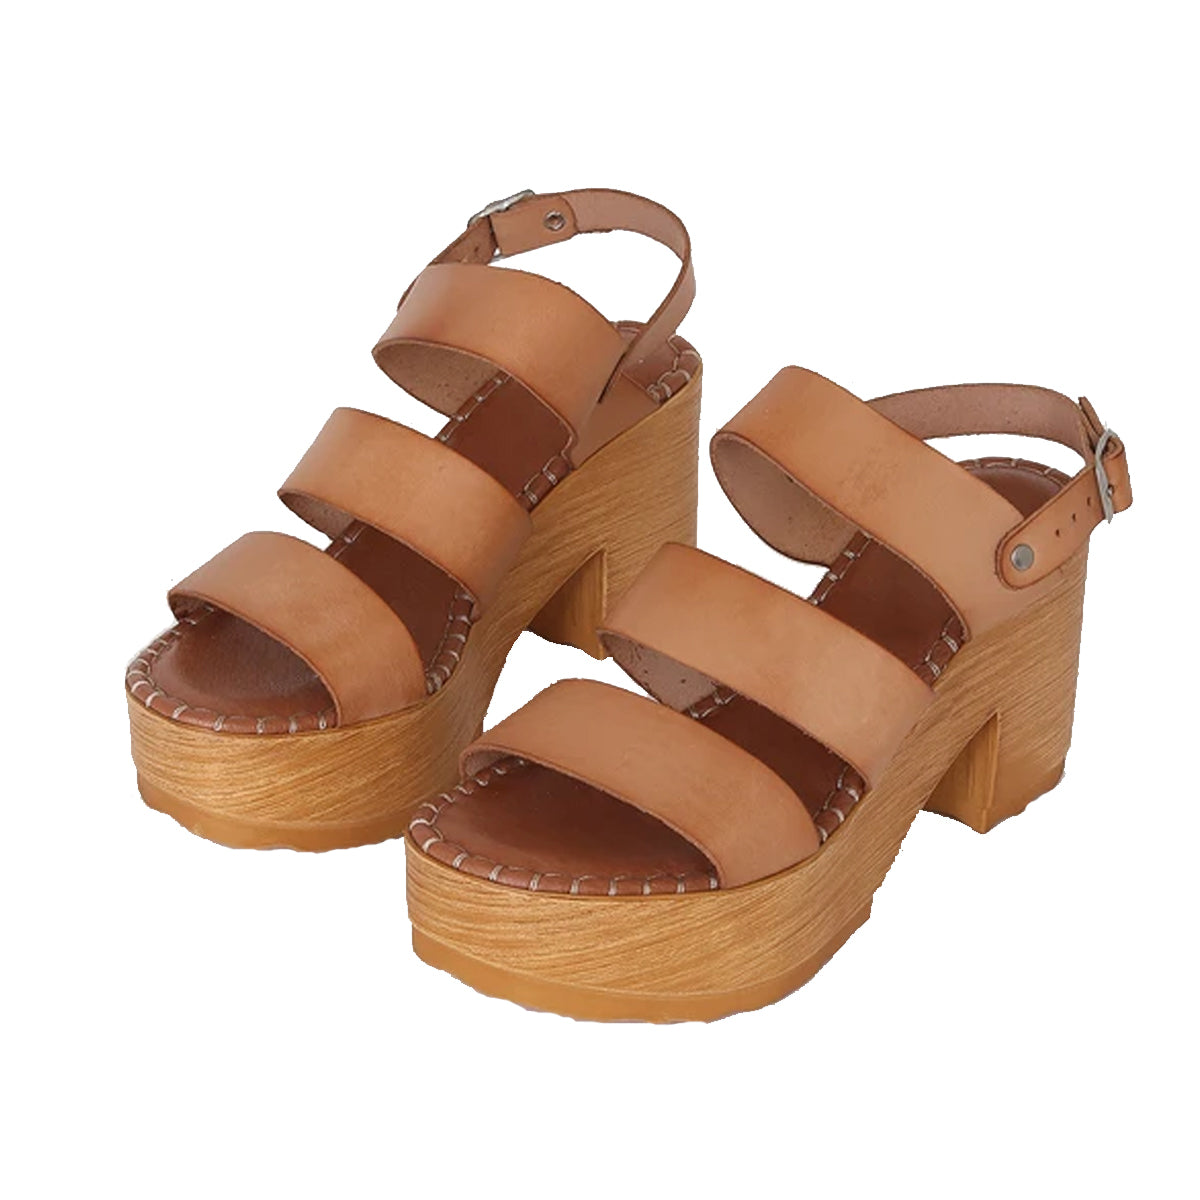 Musse & Cloud Women's Frisa Leather Platform Sandals - Natural